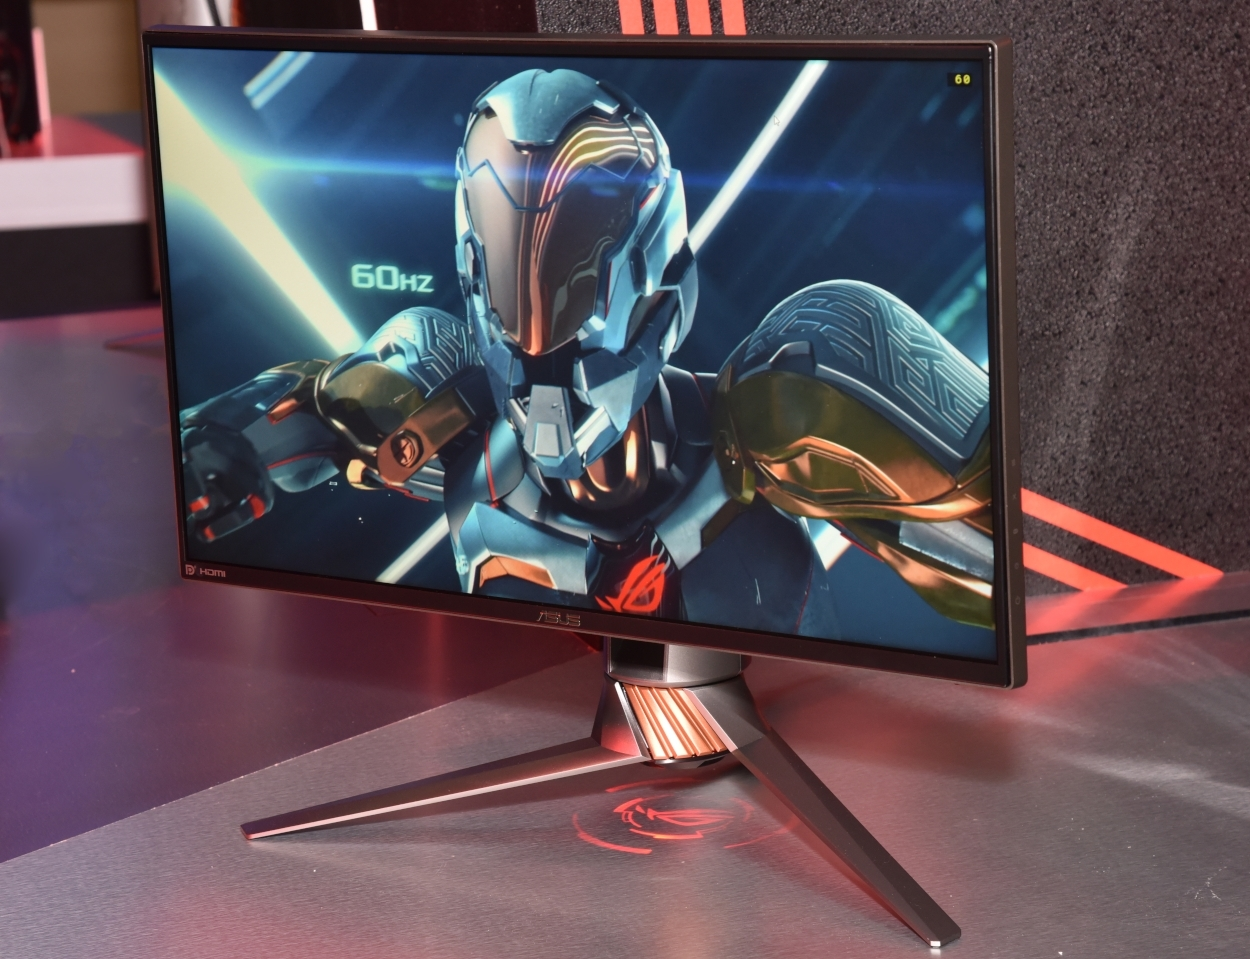 ASUS reveal their ROG Swift PG258Q 240Hz gaming monitor | OC3D News